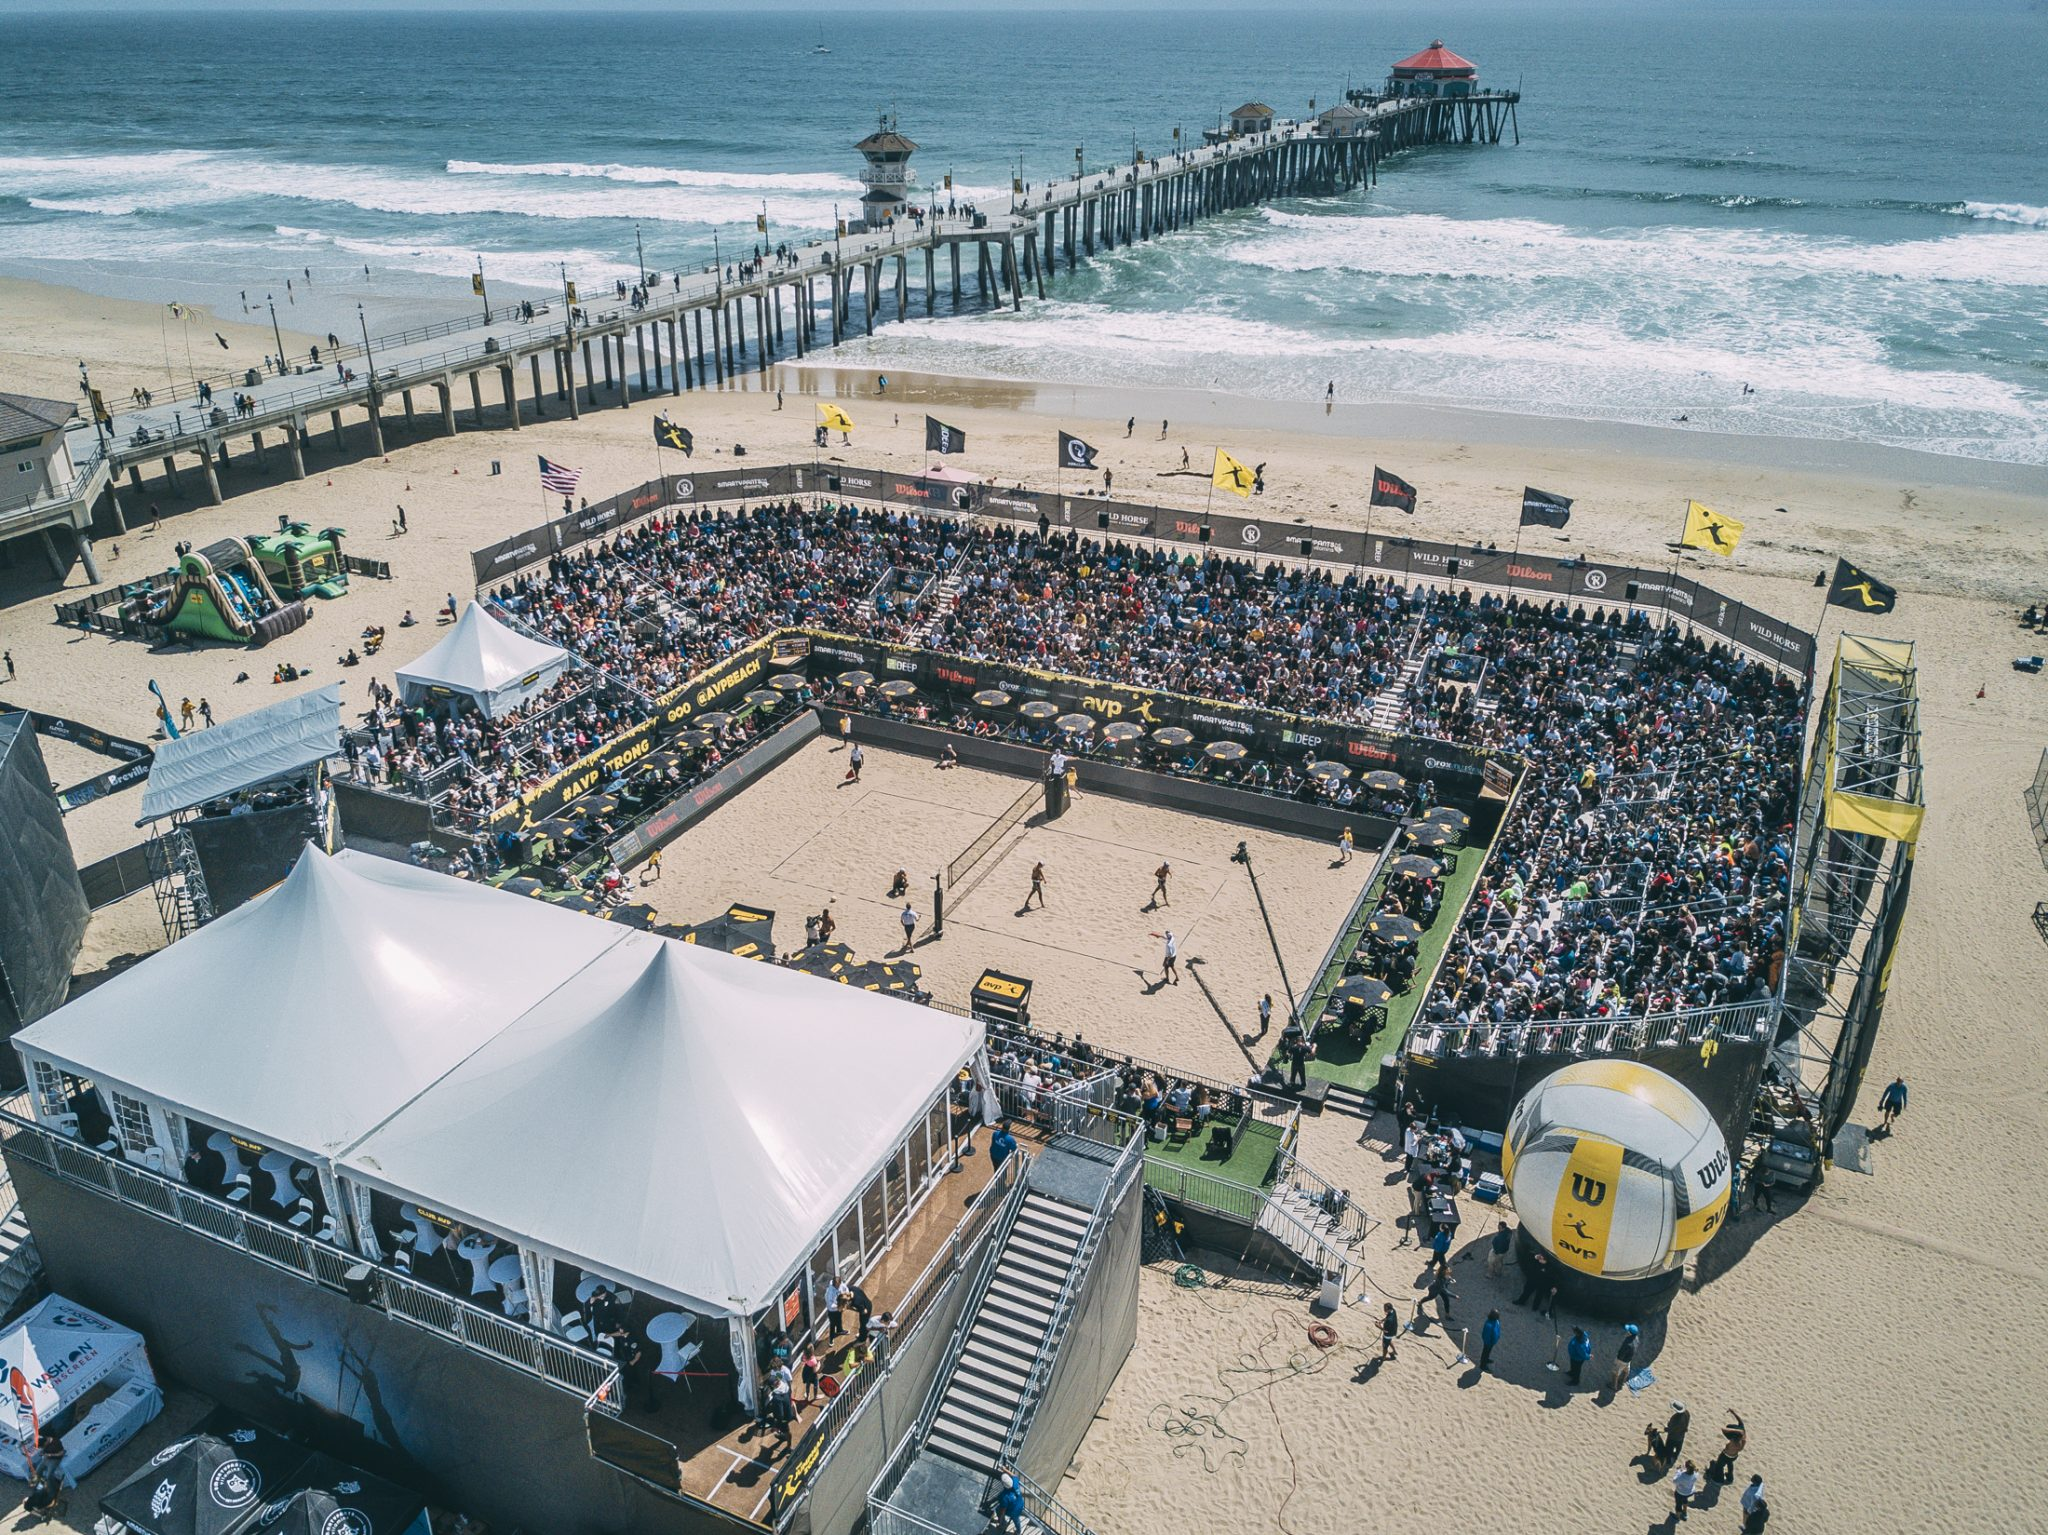 Drone Photos of the AVP Huntington Beach Open 2017 By Josh Glazebrook